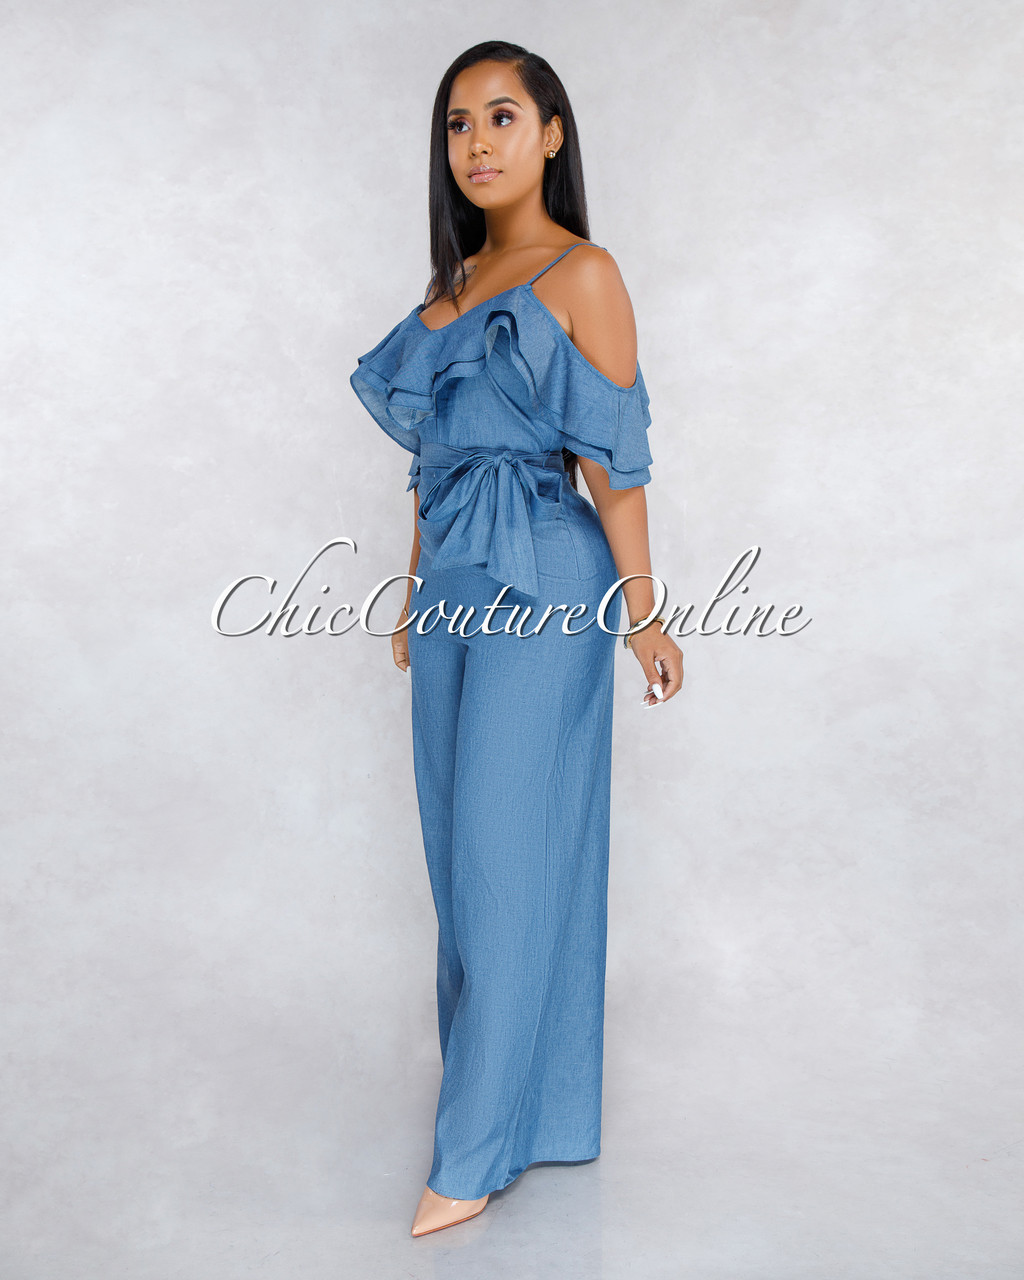 5a63217a82d2 Mejeane Dark Chambray Ruffle Cold Shoulder Jumpsuit. Price   50.00. Image  1. Larger   More Photos